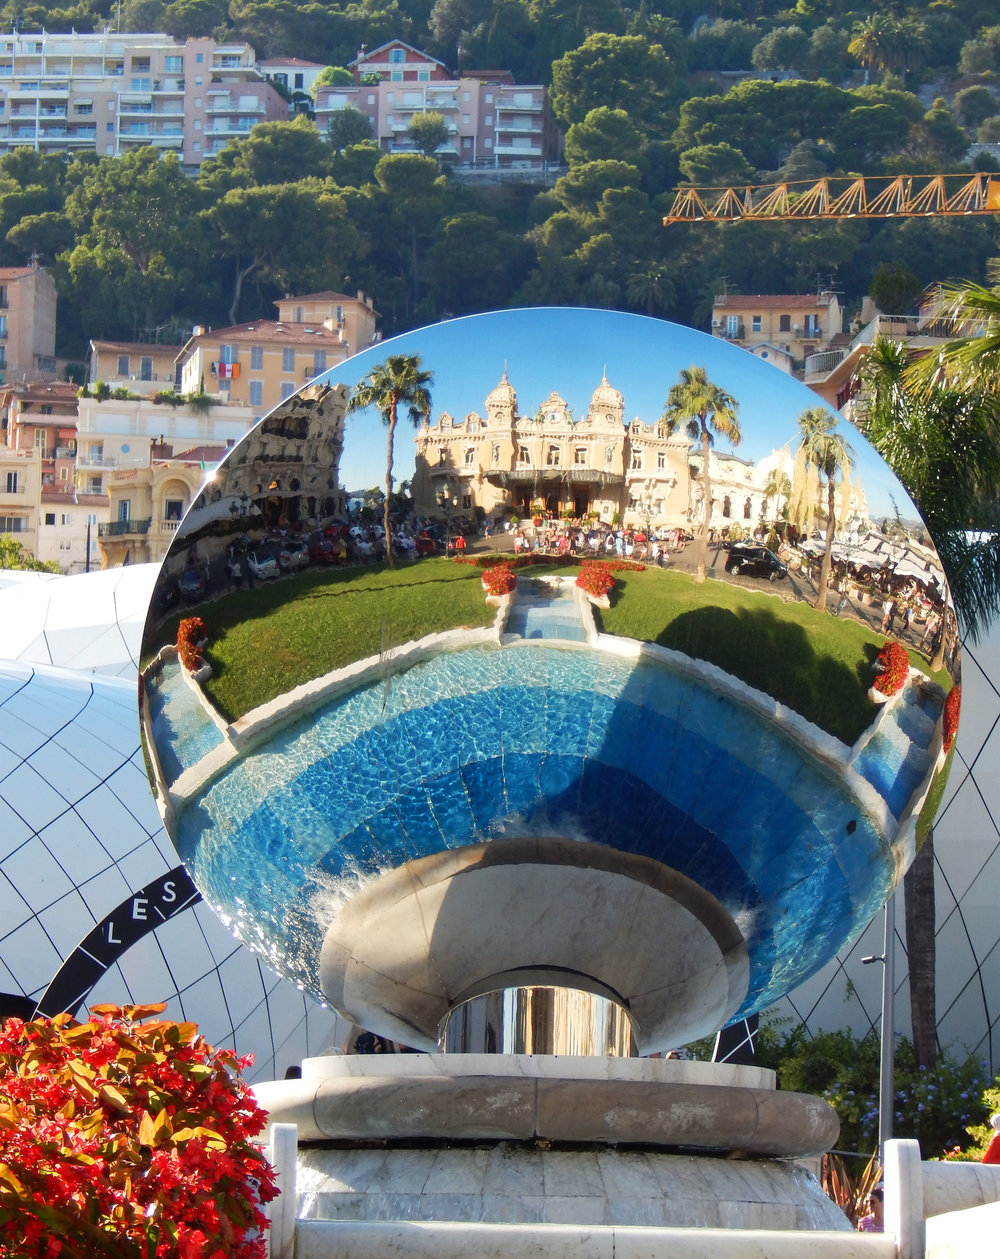 Monaco reflection